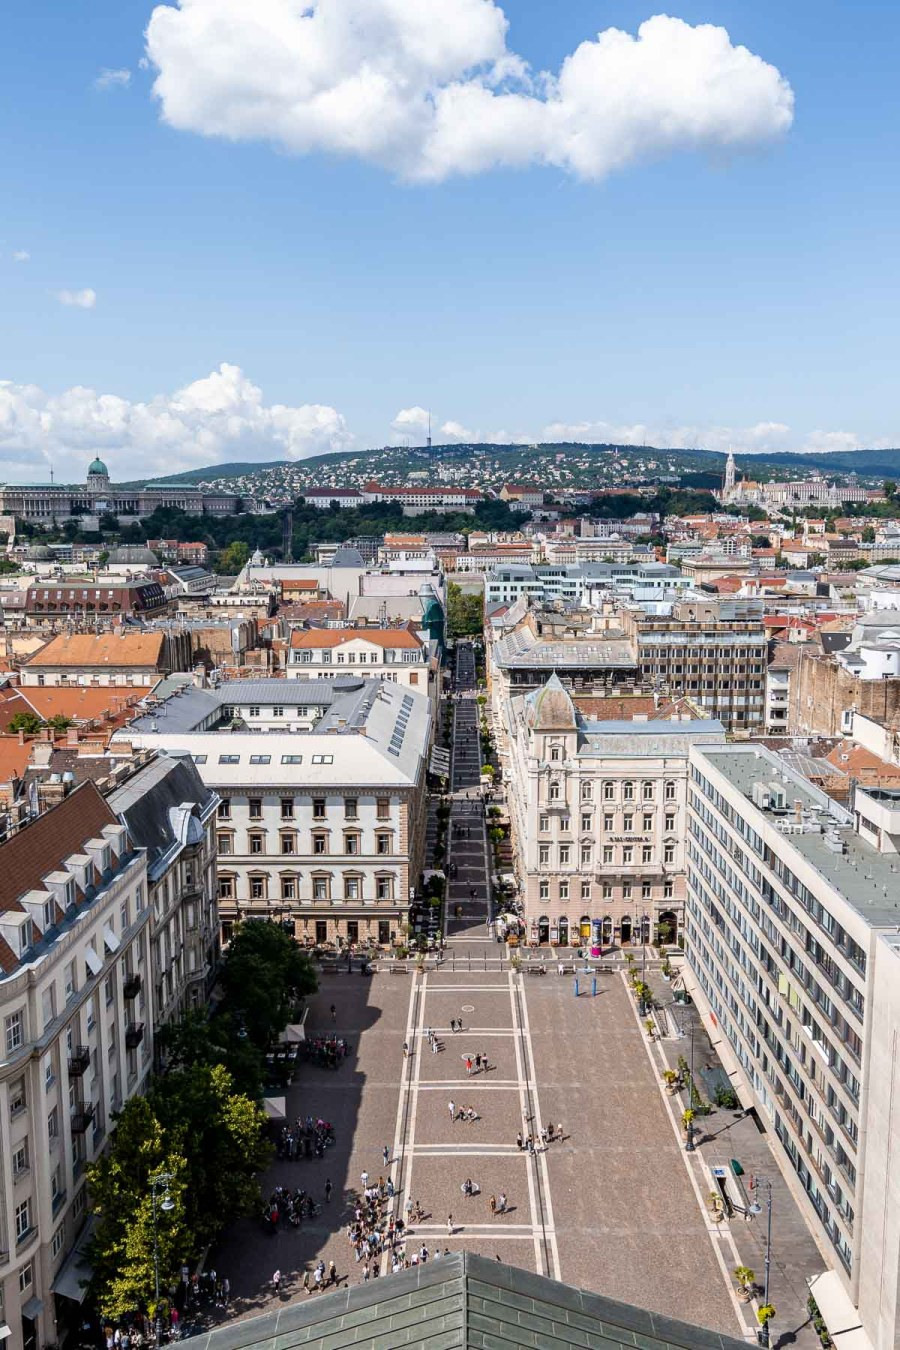 View of the St. Stephen Square and the city of Budapest from the St. Stephen Basilica